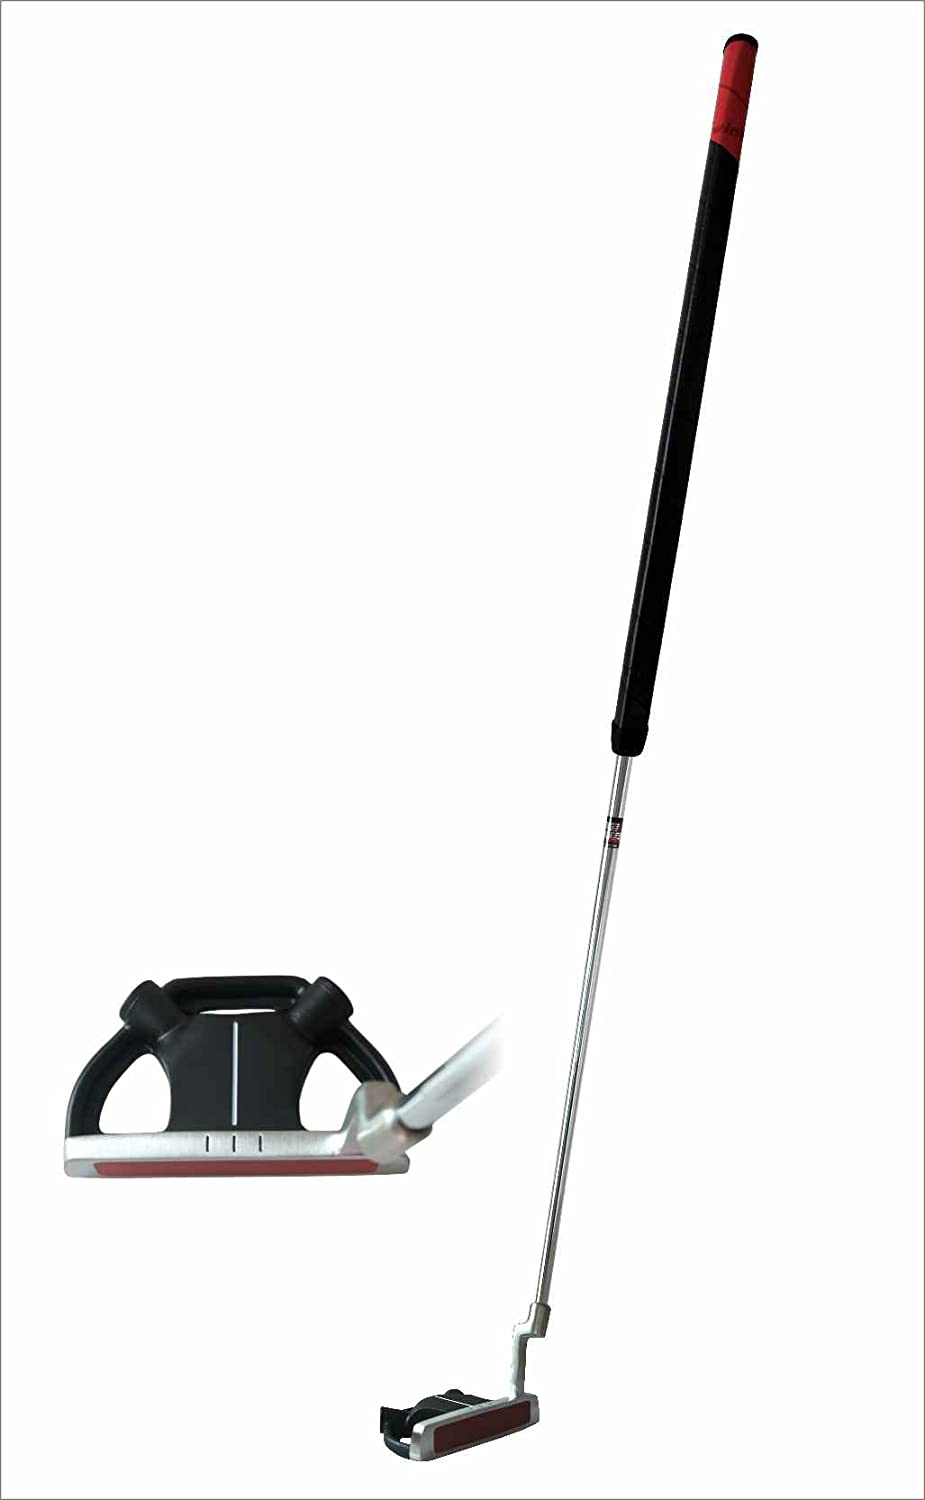 Precise SP-009 Stainless Belly Putter with Winn Grip and Bonus Headcover